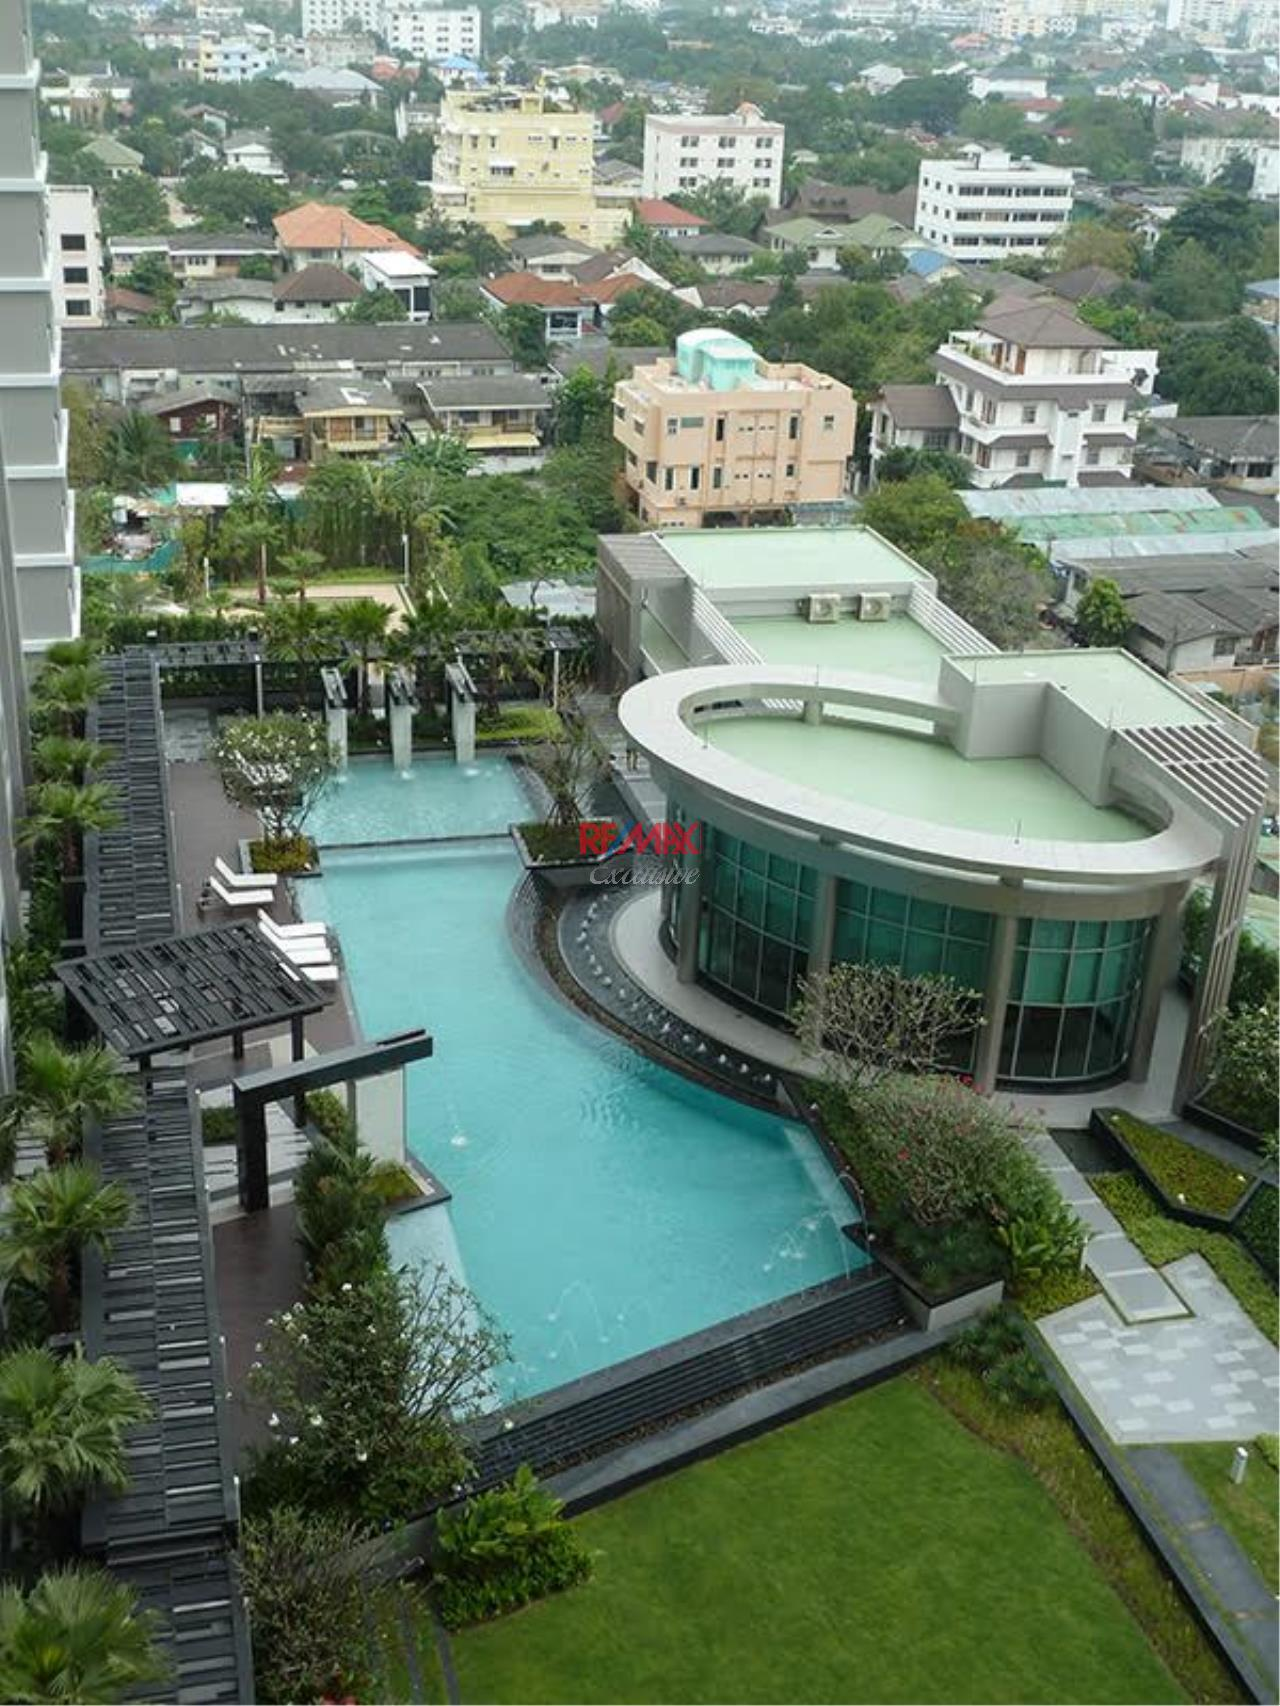 RE/MAX Exclusive Agency's Rhythm Ratchada 1 Bedroom with Sky Kitchen for Rent 20,000 THB 7